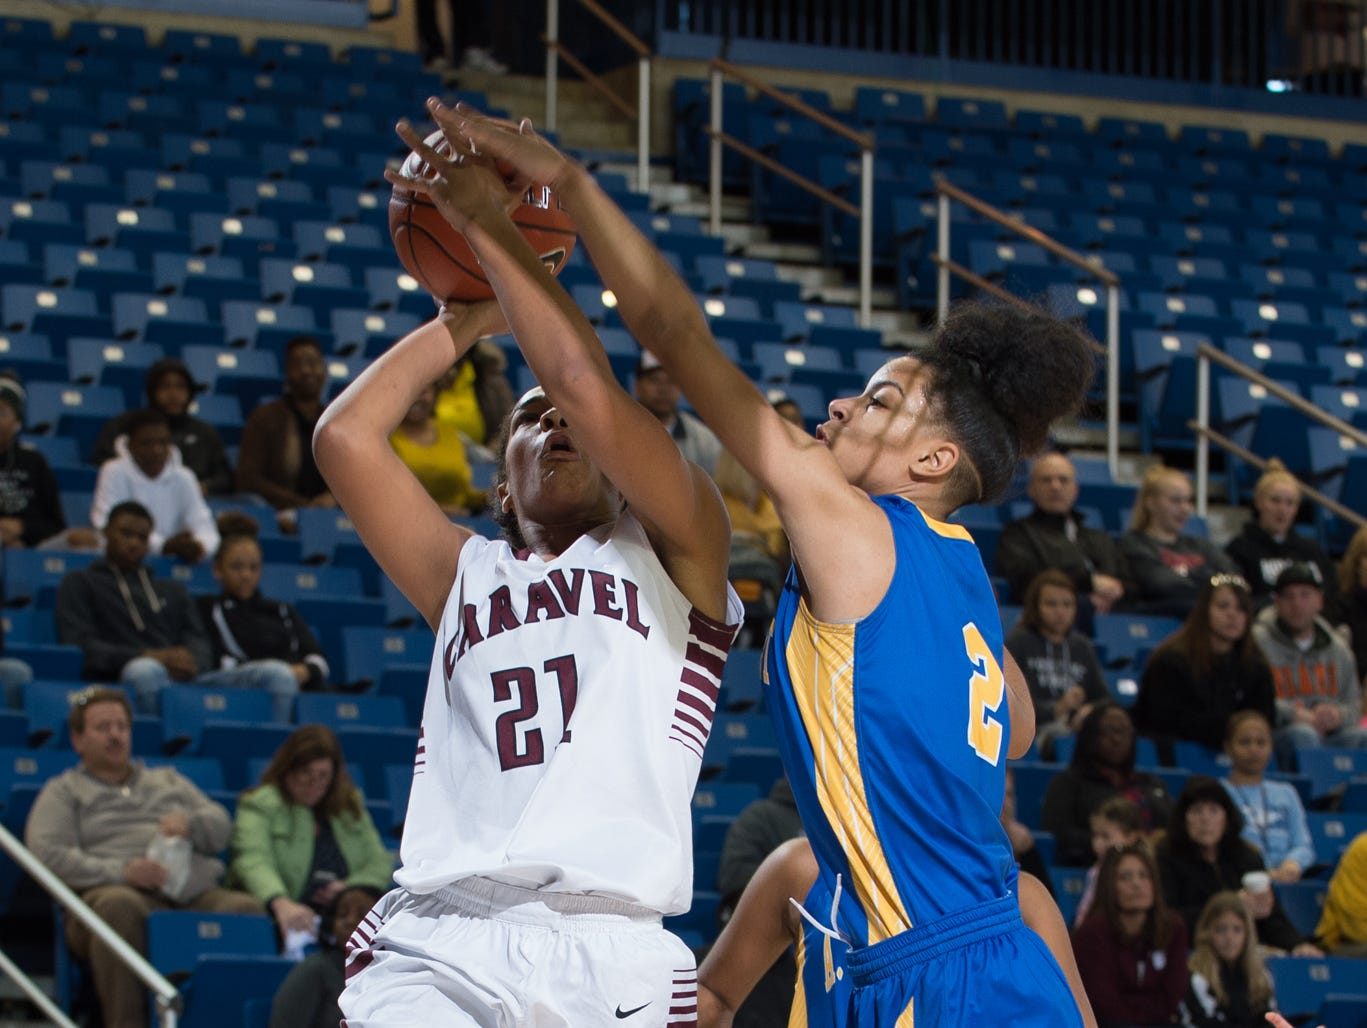 A.I. duPont's Lauryn Griffin (2) reaches to stop a shot by Caravel's Kaylee Otlowski (21) in the quarterfinals of DIAA Girls Basketball Tournament at the University of Delaware.